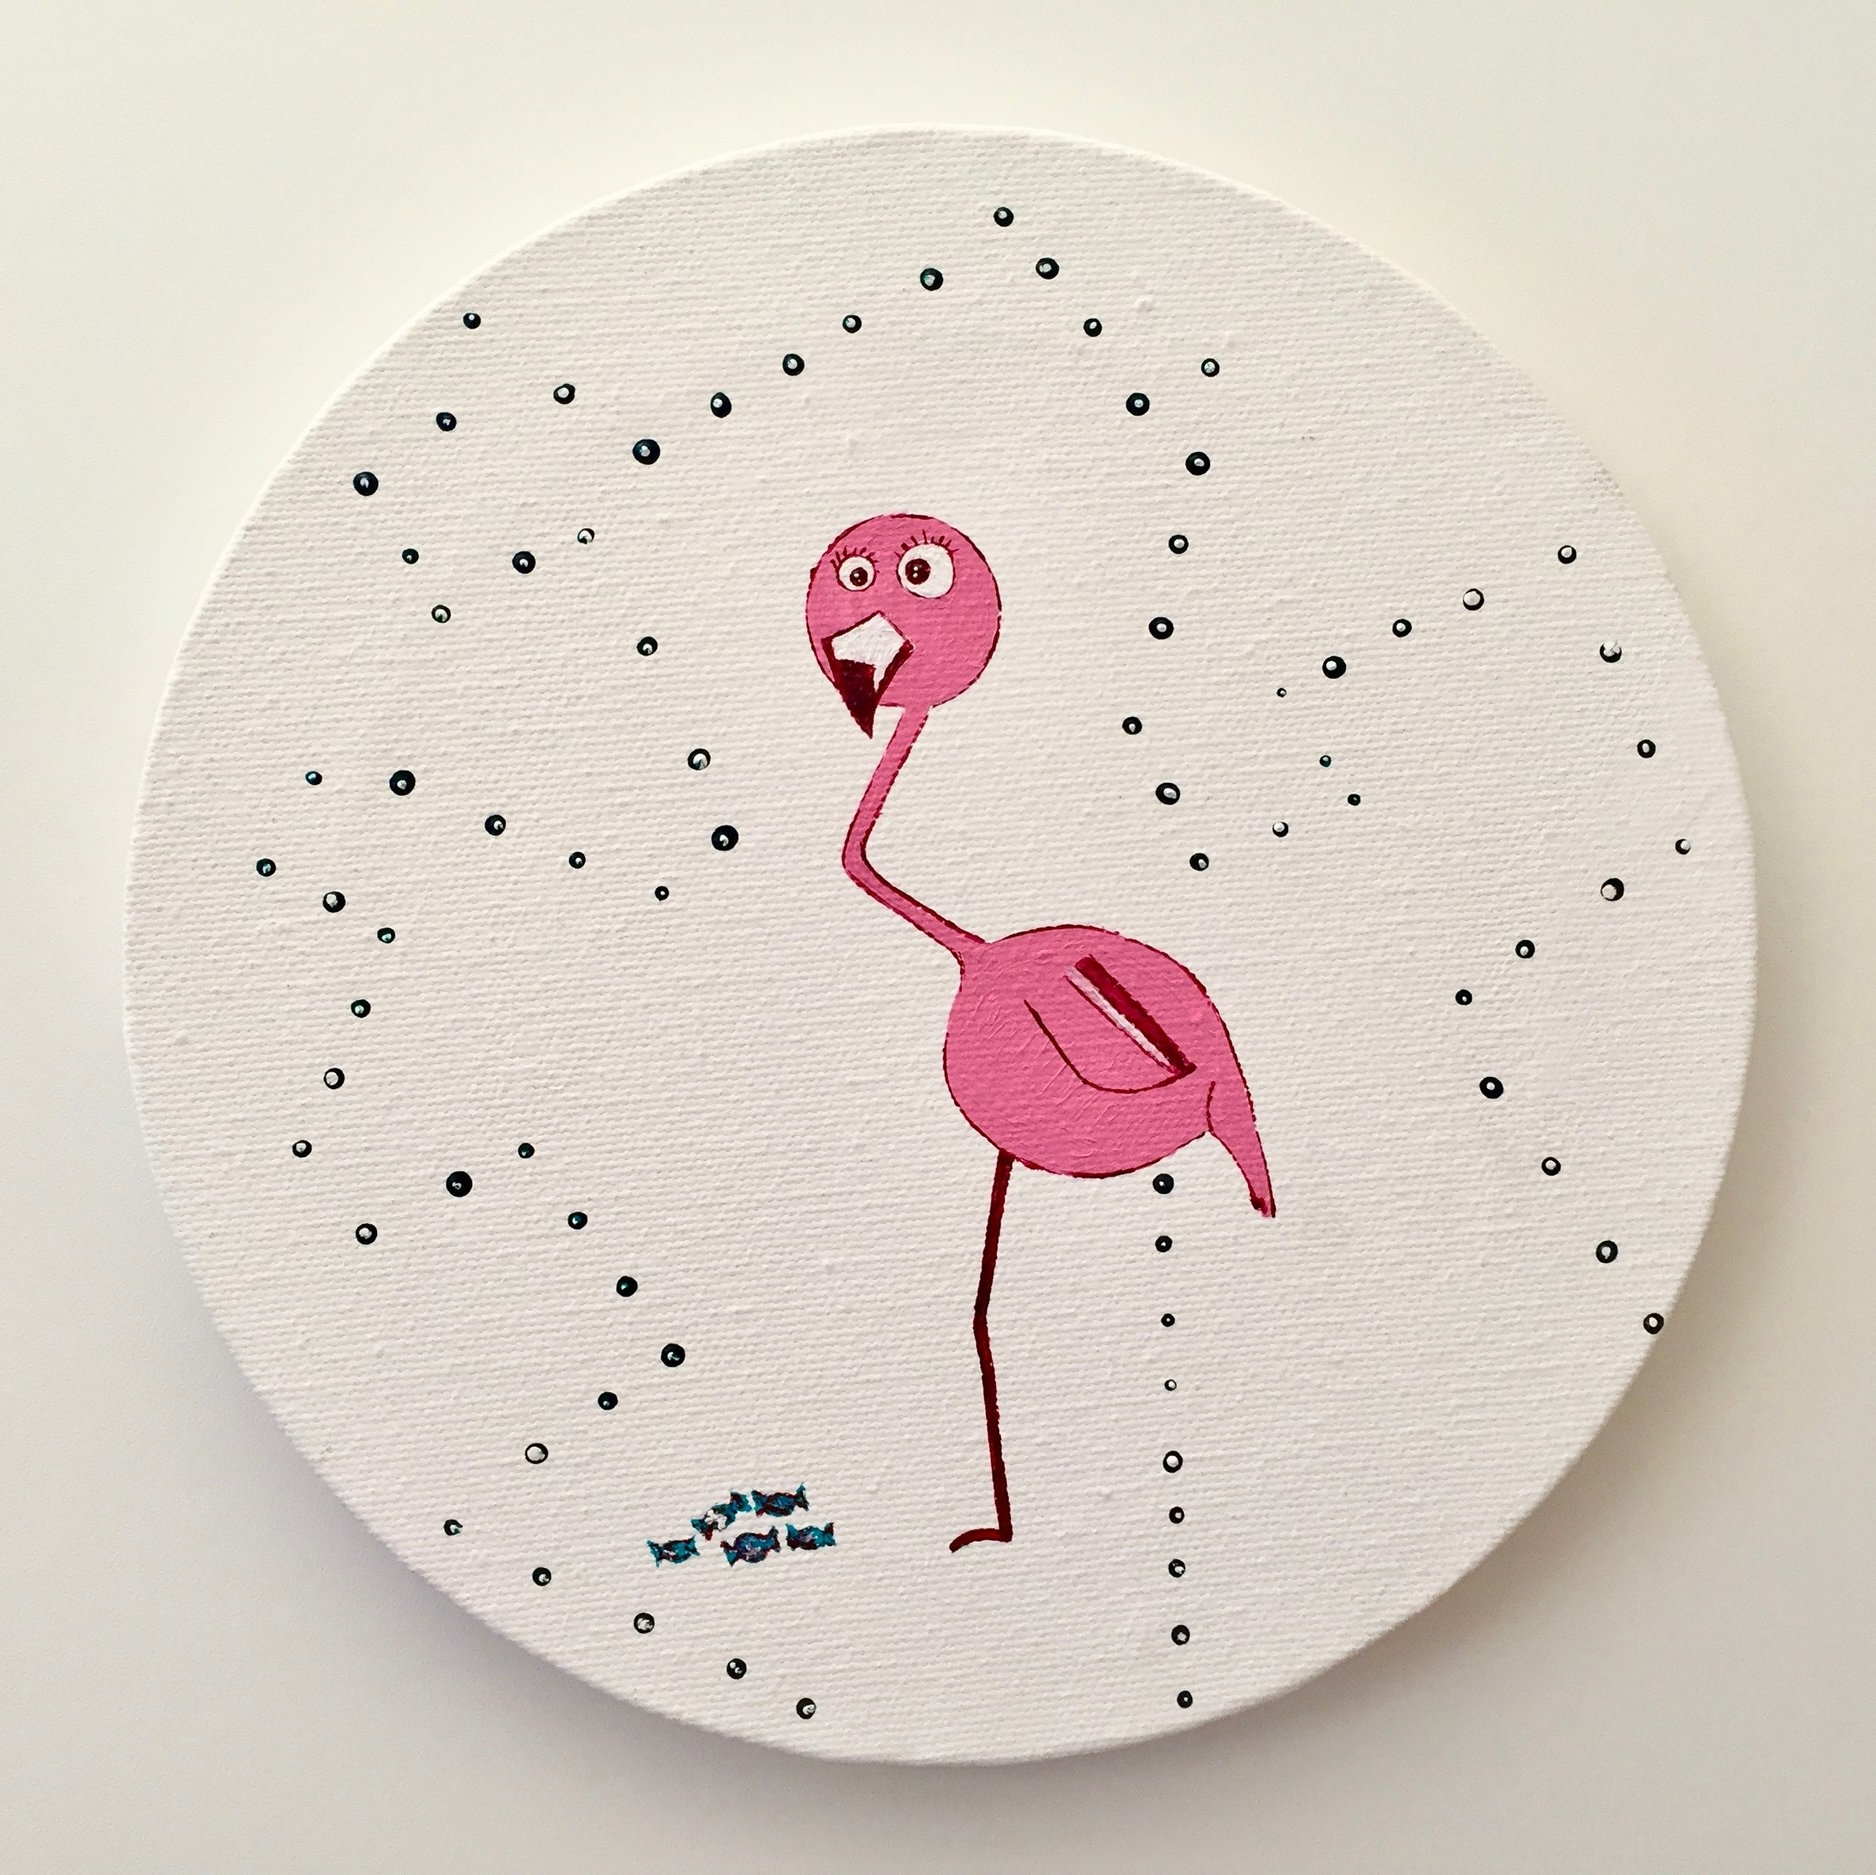 Fatima the Flamingo (at day)  2013 Acrylics on canvas 20cm diameter  More information